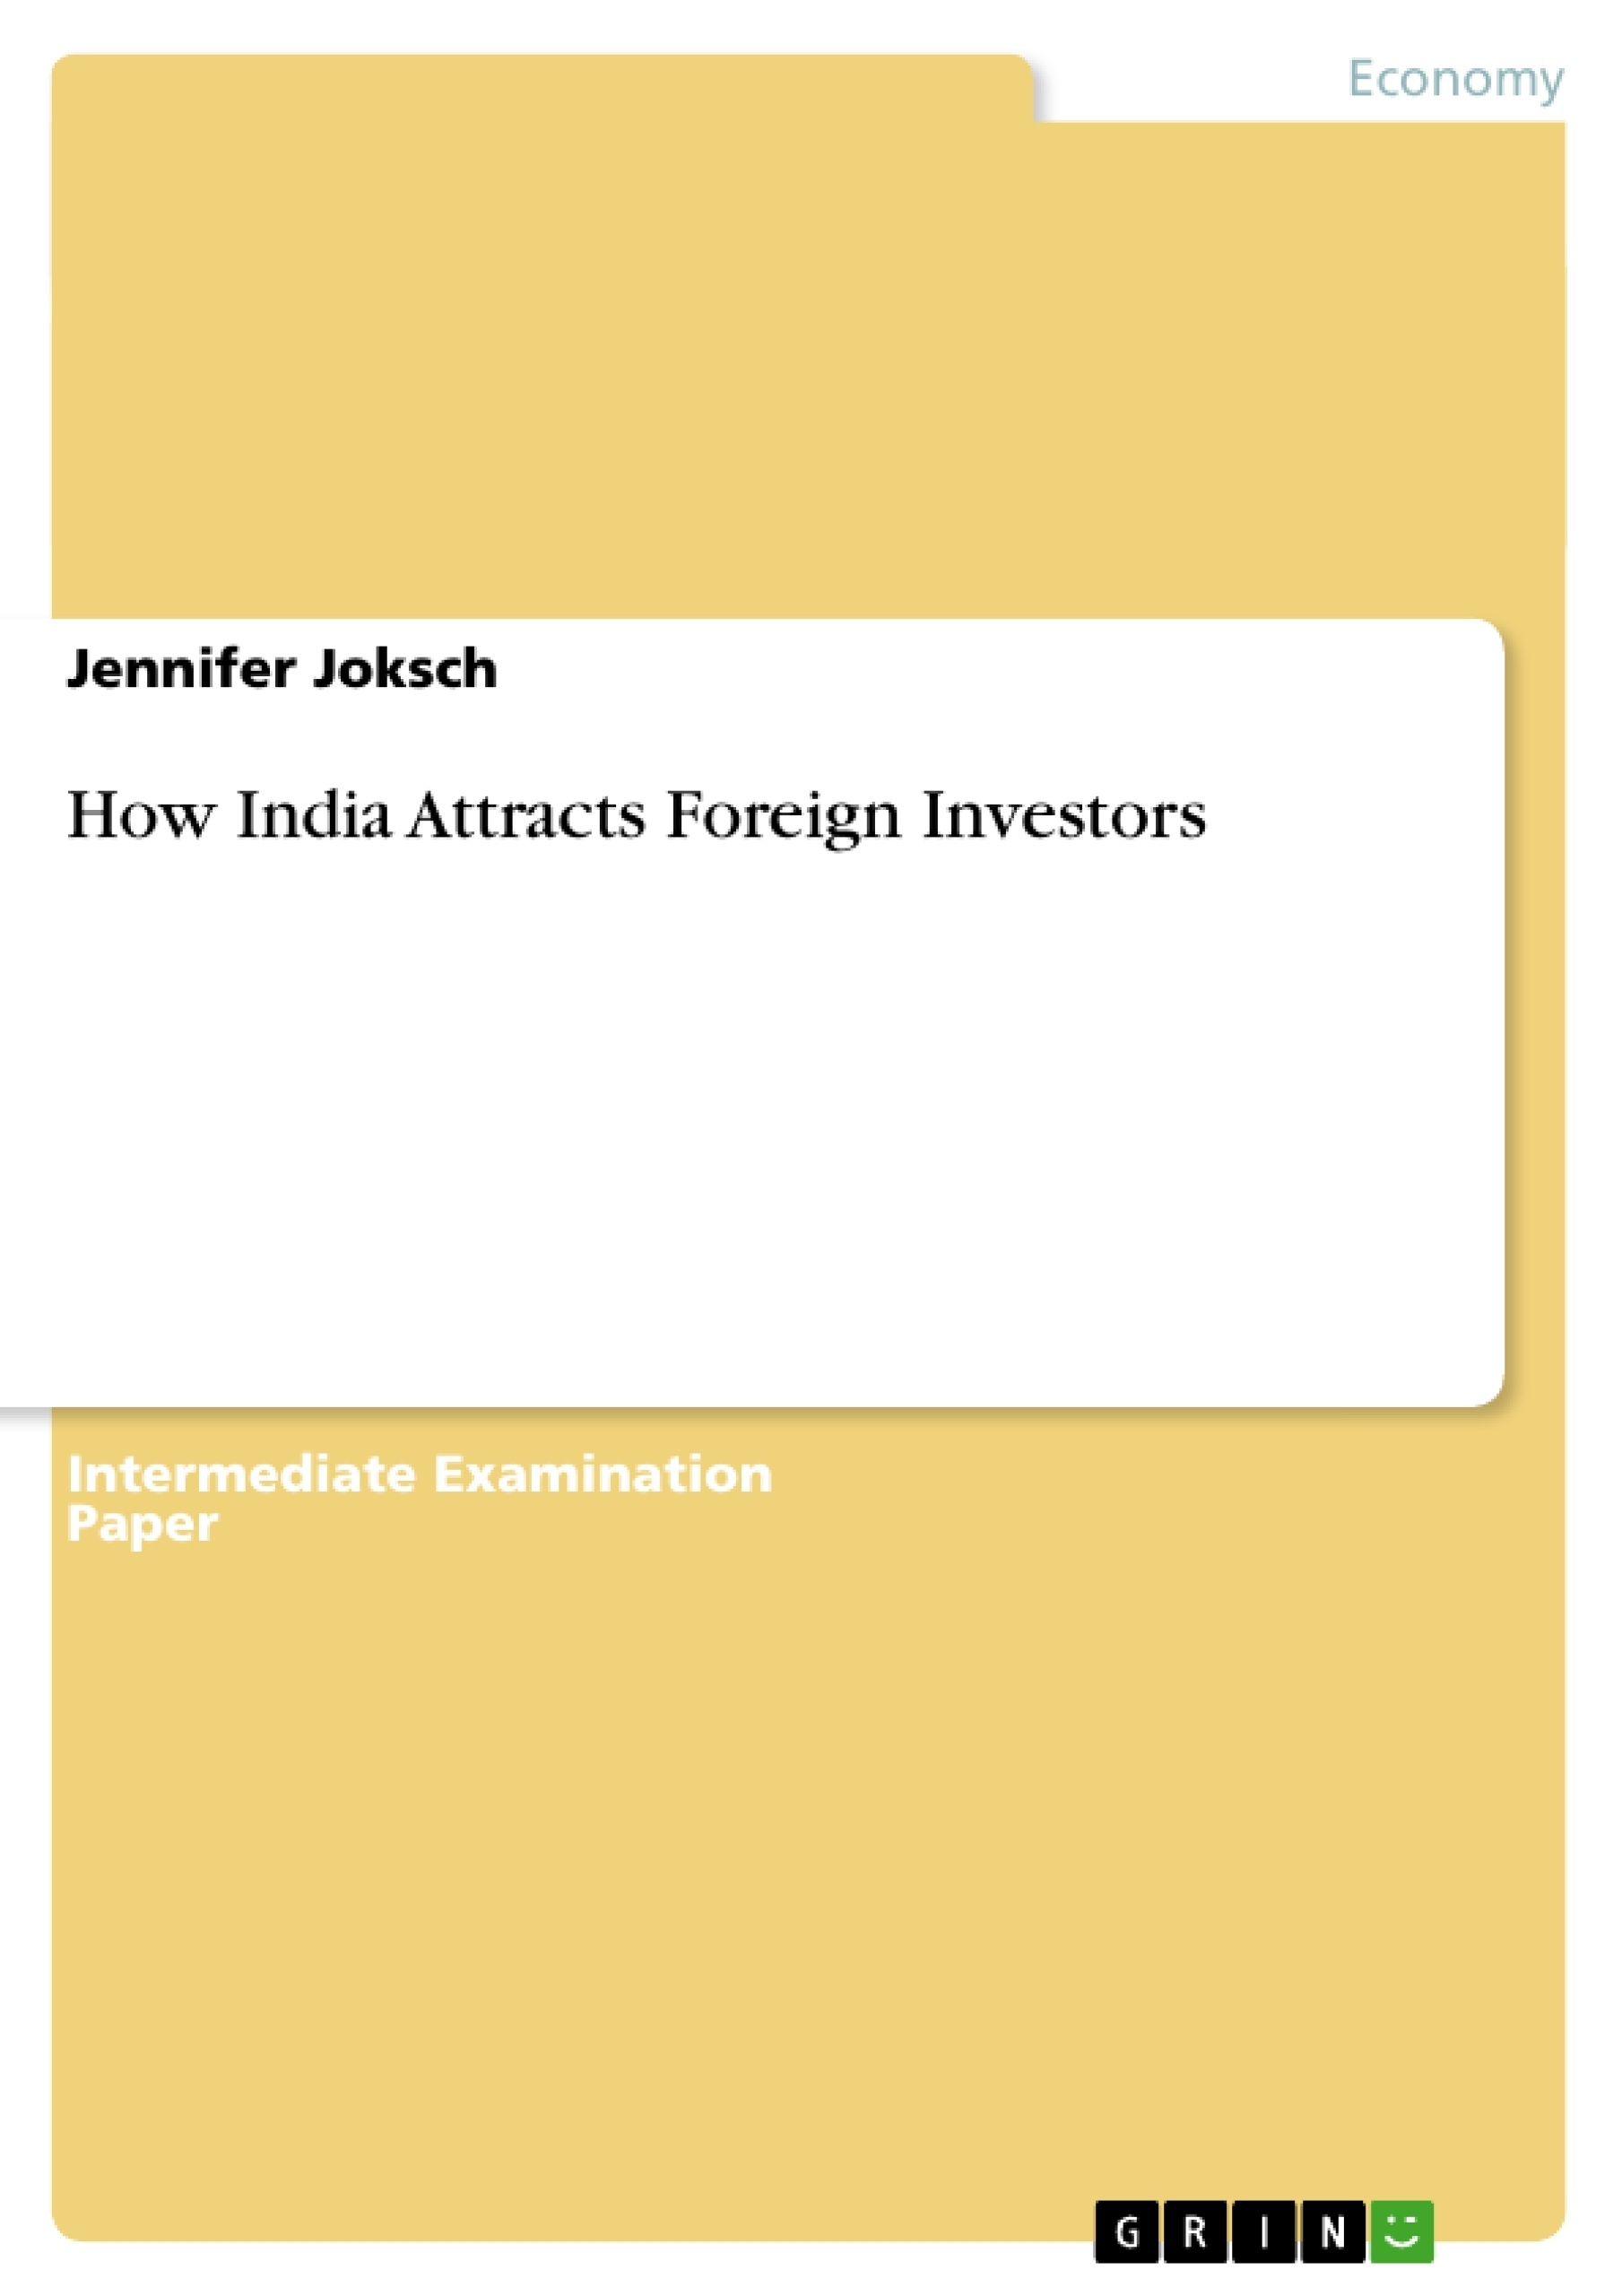 Title: How India Attracts Foreign Investors